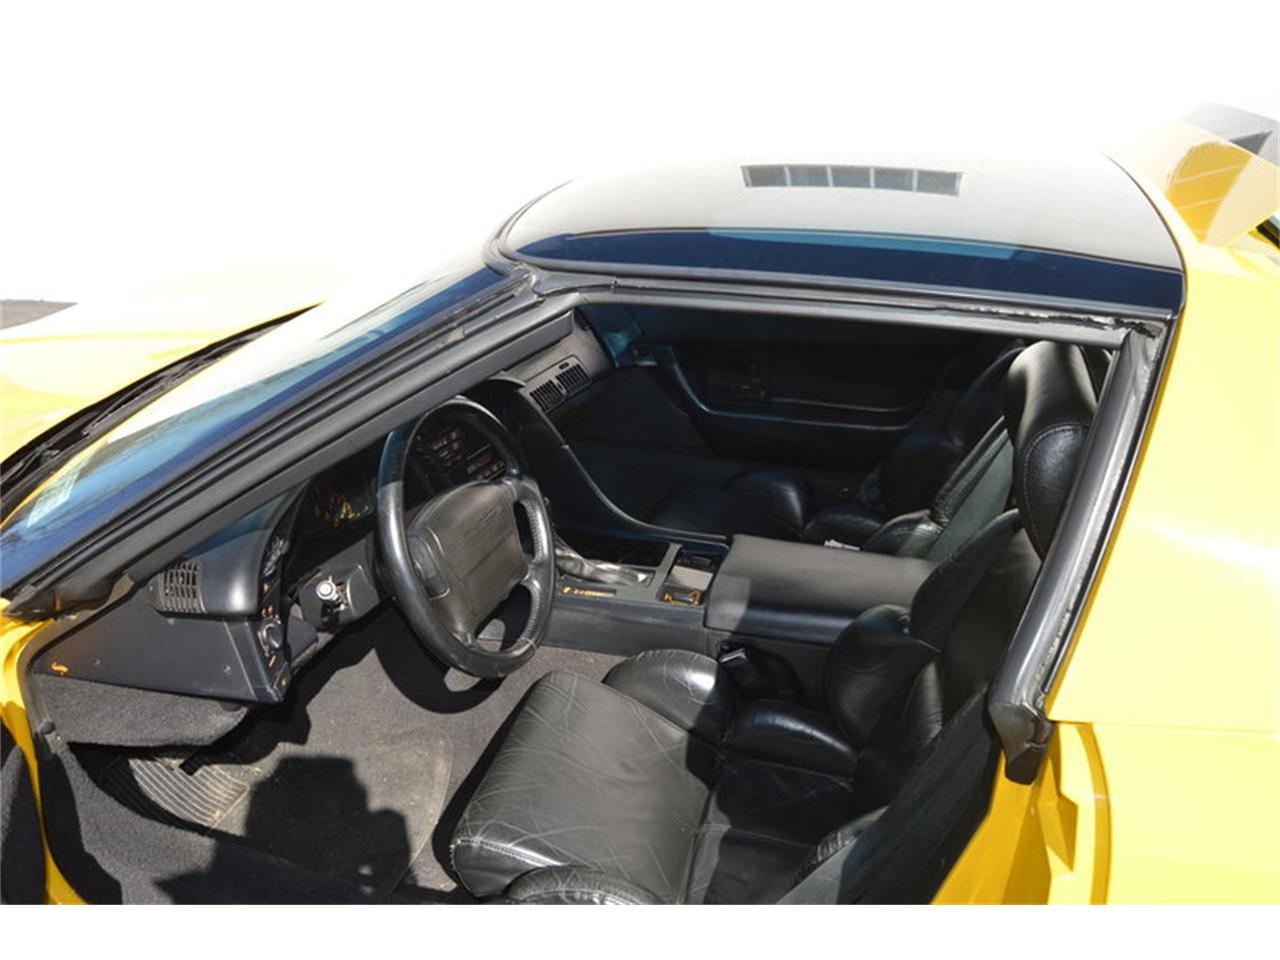 Large Picture of '93 Chevrolet Corvette located in Massachusetts Offered by Mutual Enterprises Inc. - MZK6